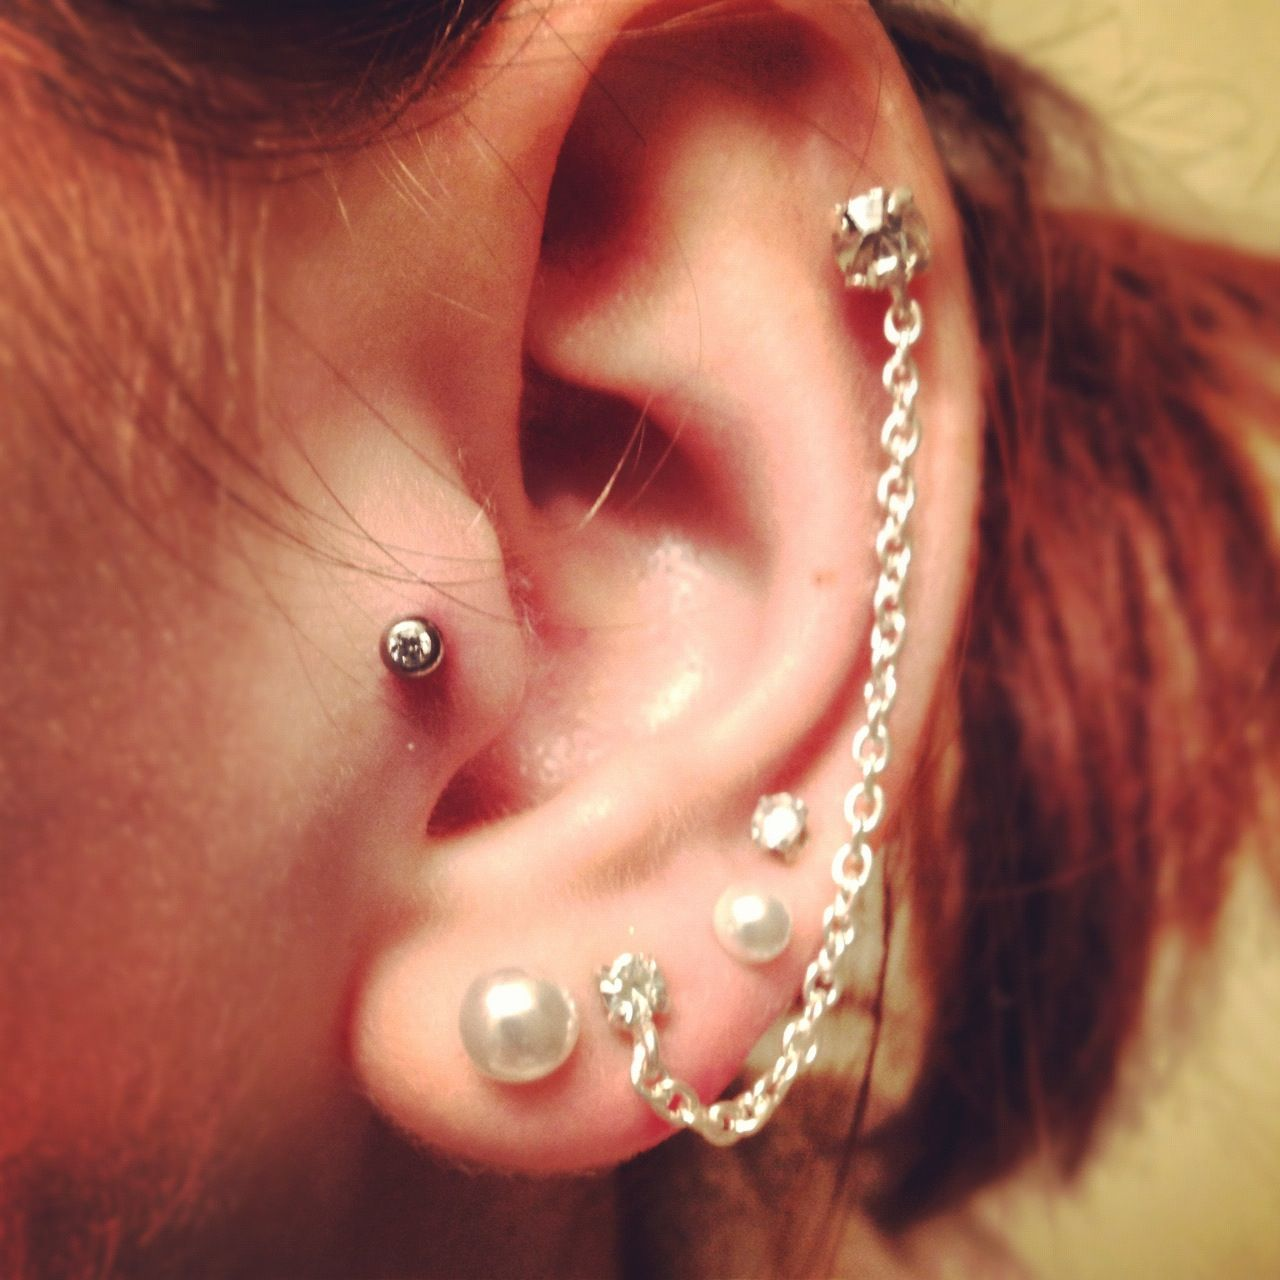 Cartilage Piercing Tattoos And Piercings Jewelry